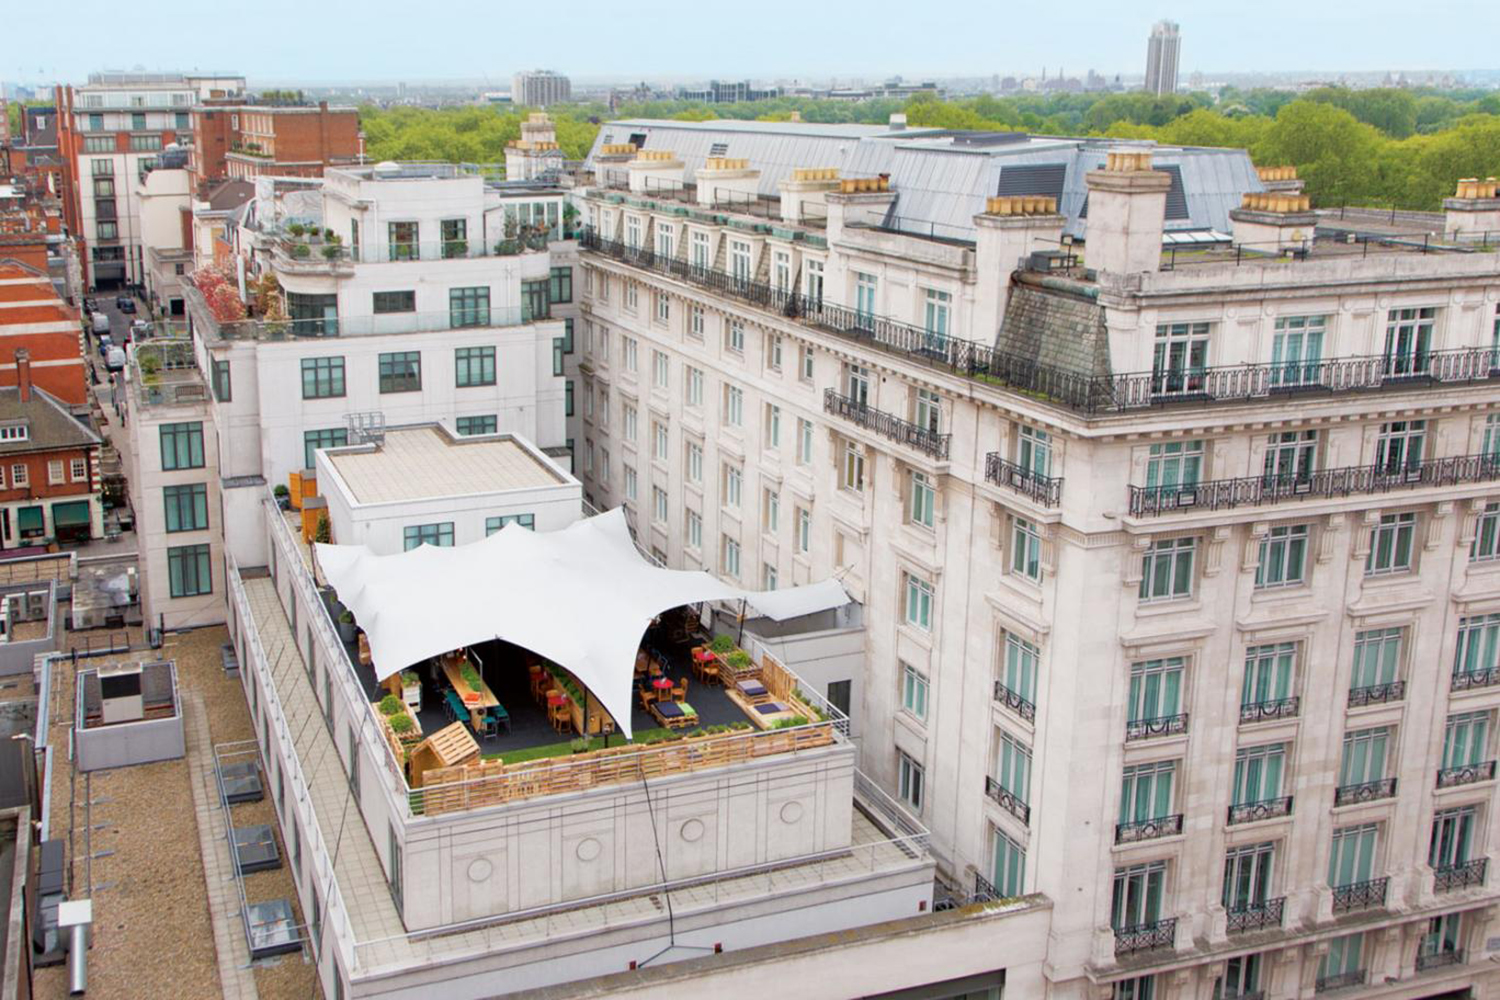 Rooftop at the Marriot Hotel central London